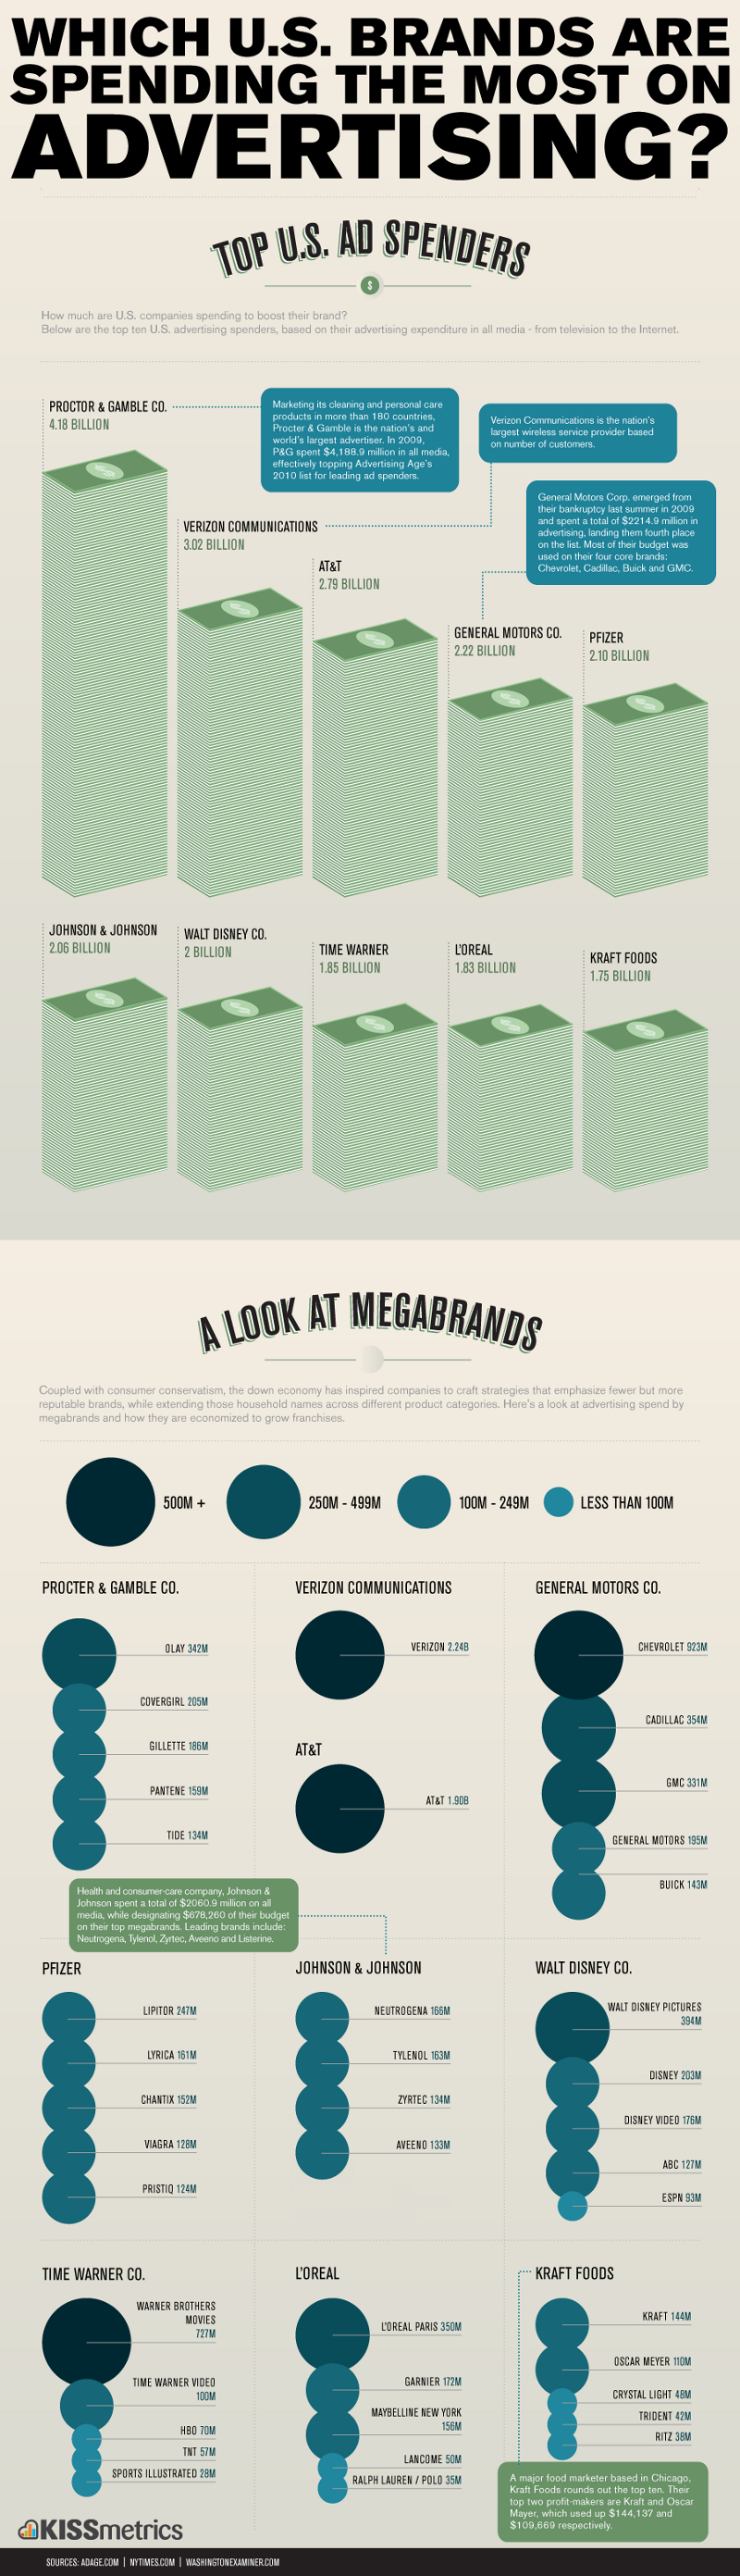 Top Brand Marketing Spenders